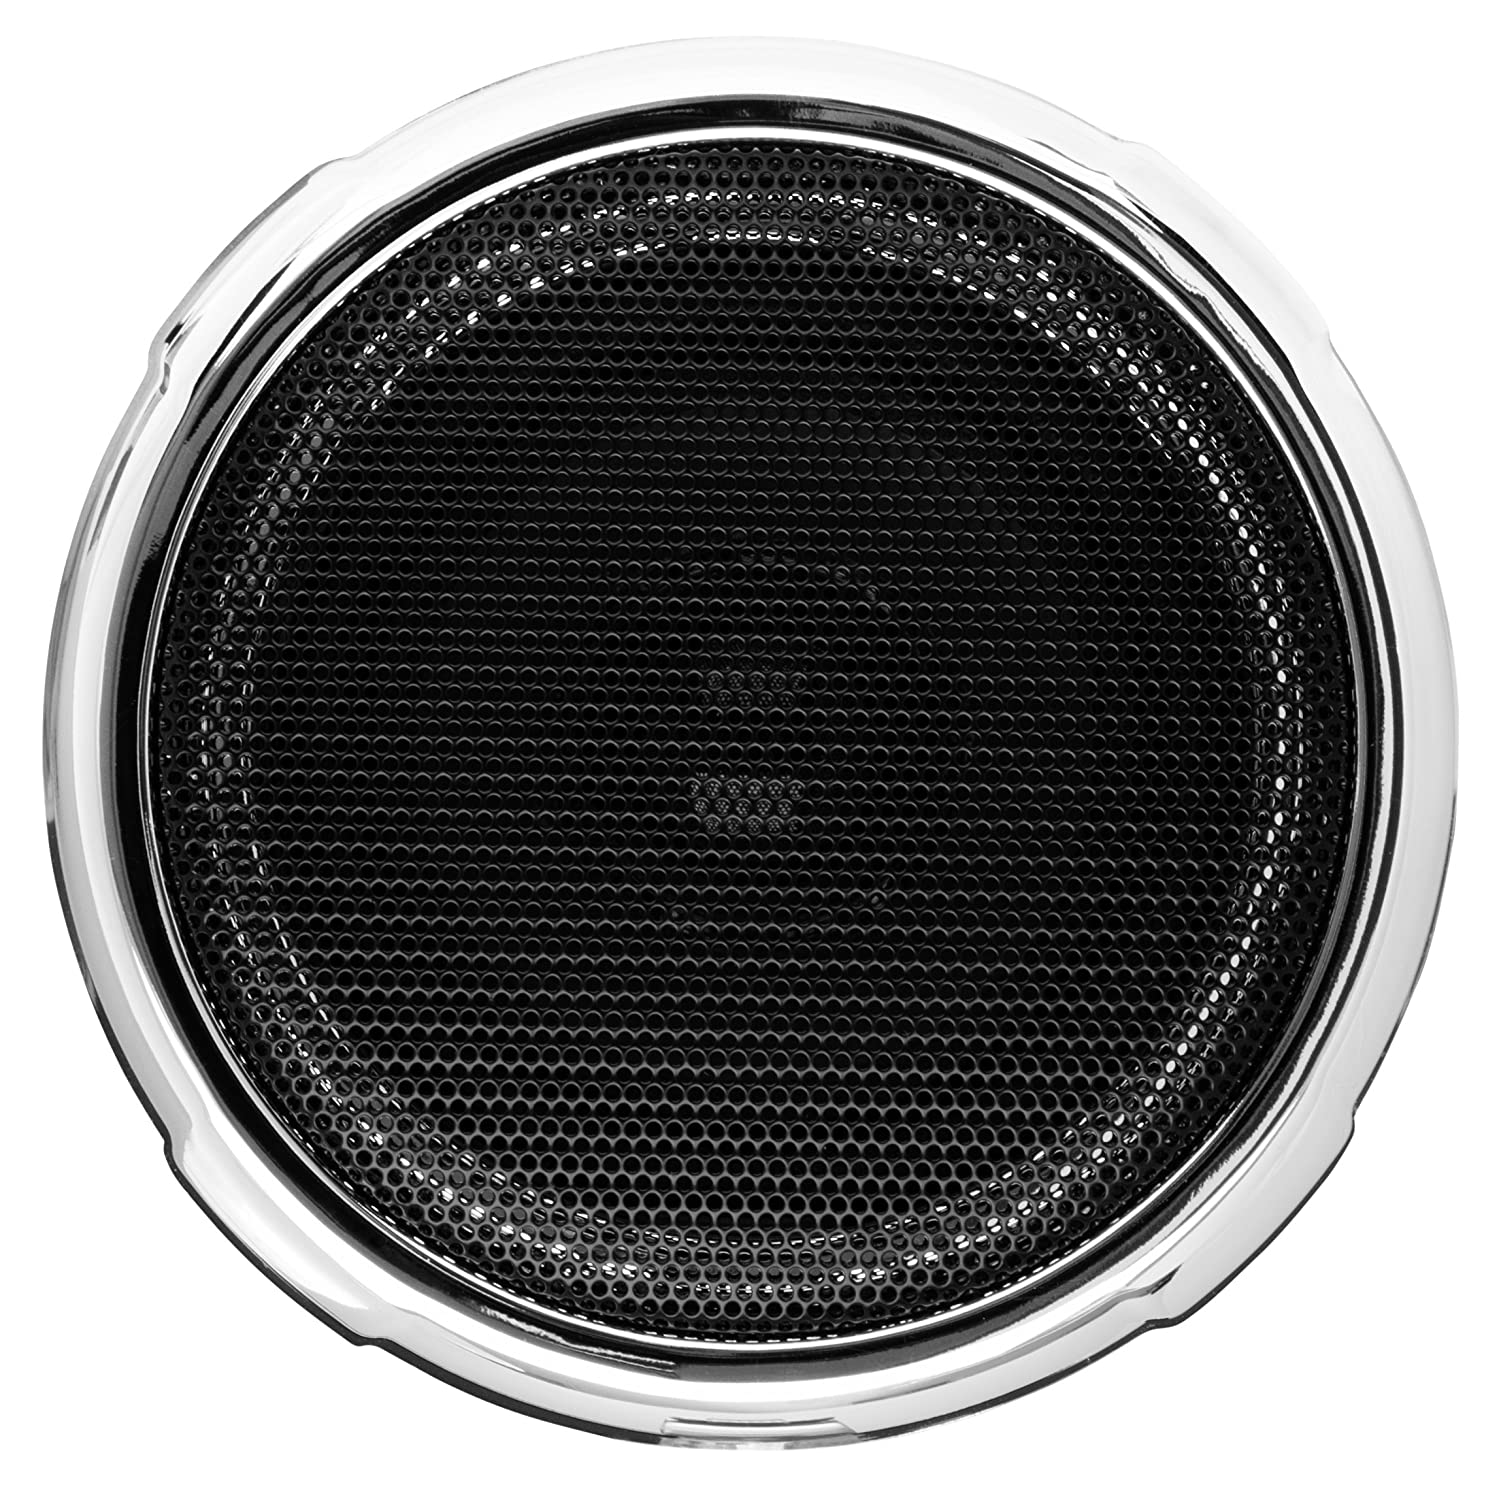 Boss Audio Mc500 All Terrain Weatherproof Speaker And 2000 Ford Mustang Amplifier Sound System Two 3 Inch Speakers Compact Multi Function Remote